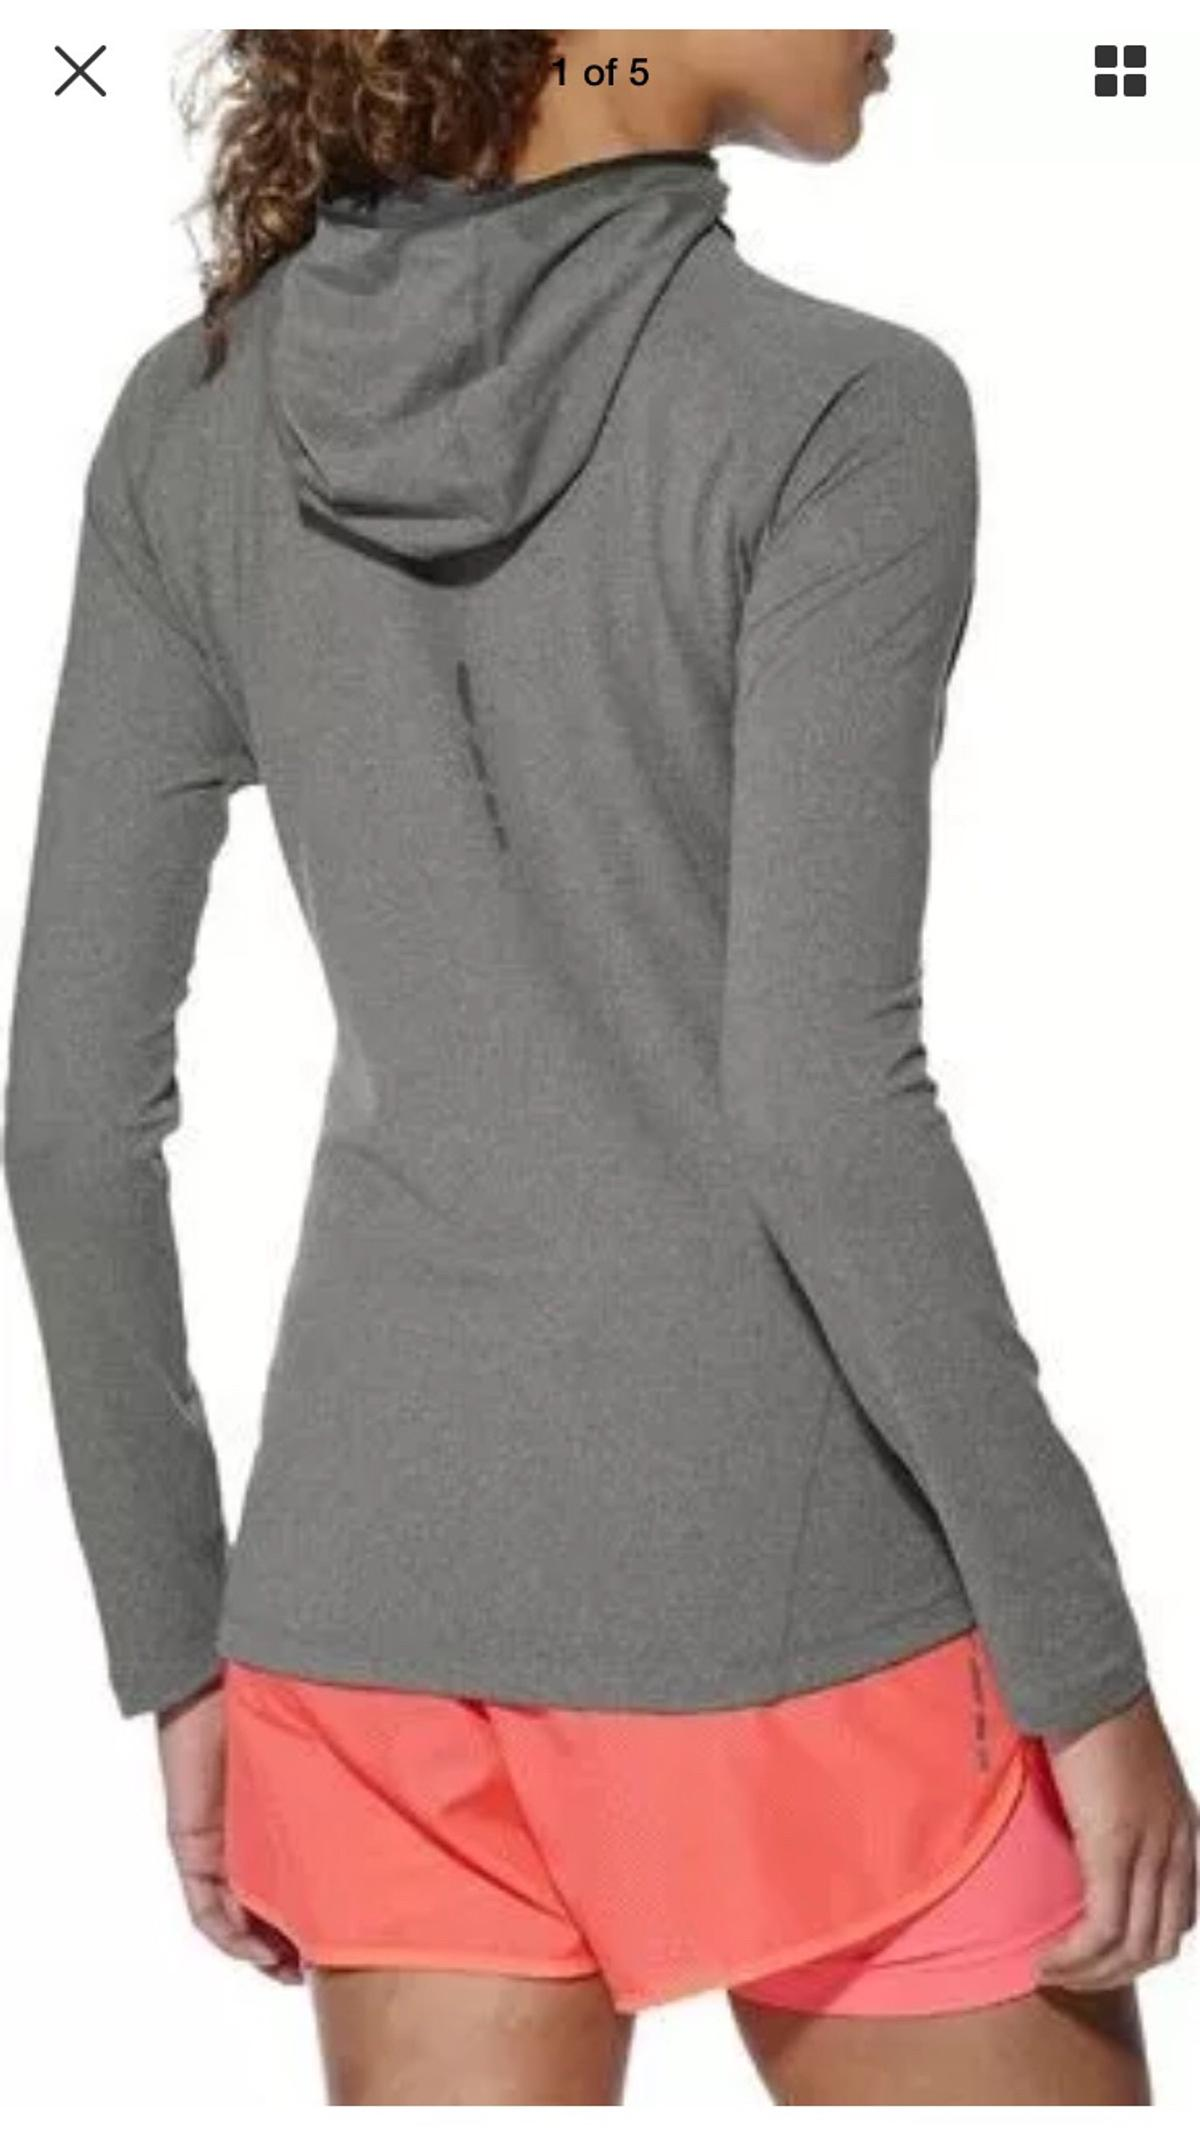 535bfb964e03 Description. Brand New with Tags Asics Long Sleeve Women s Running Hoodie